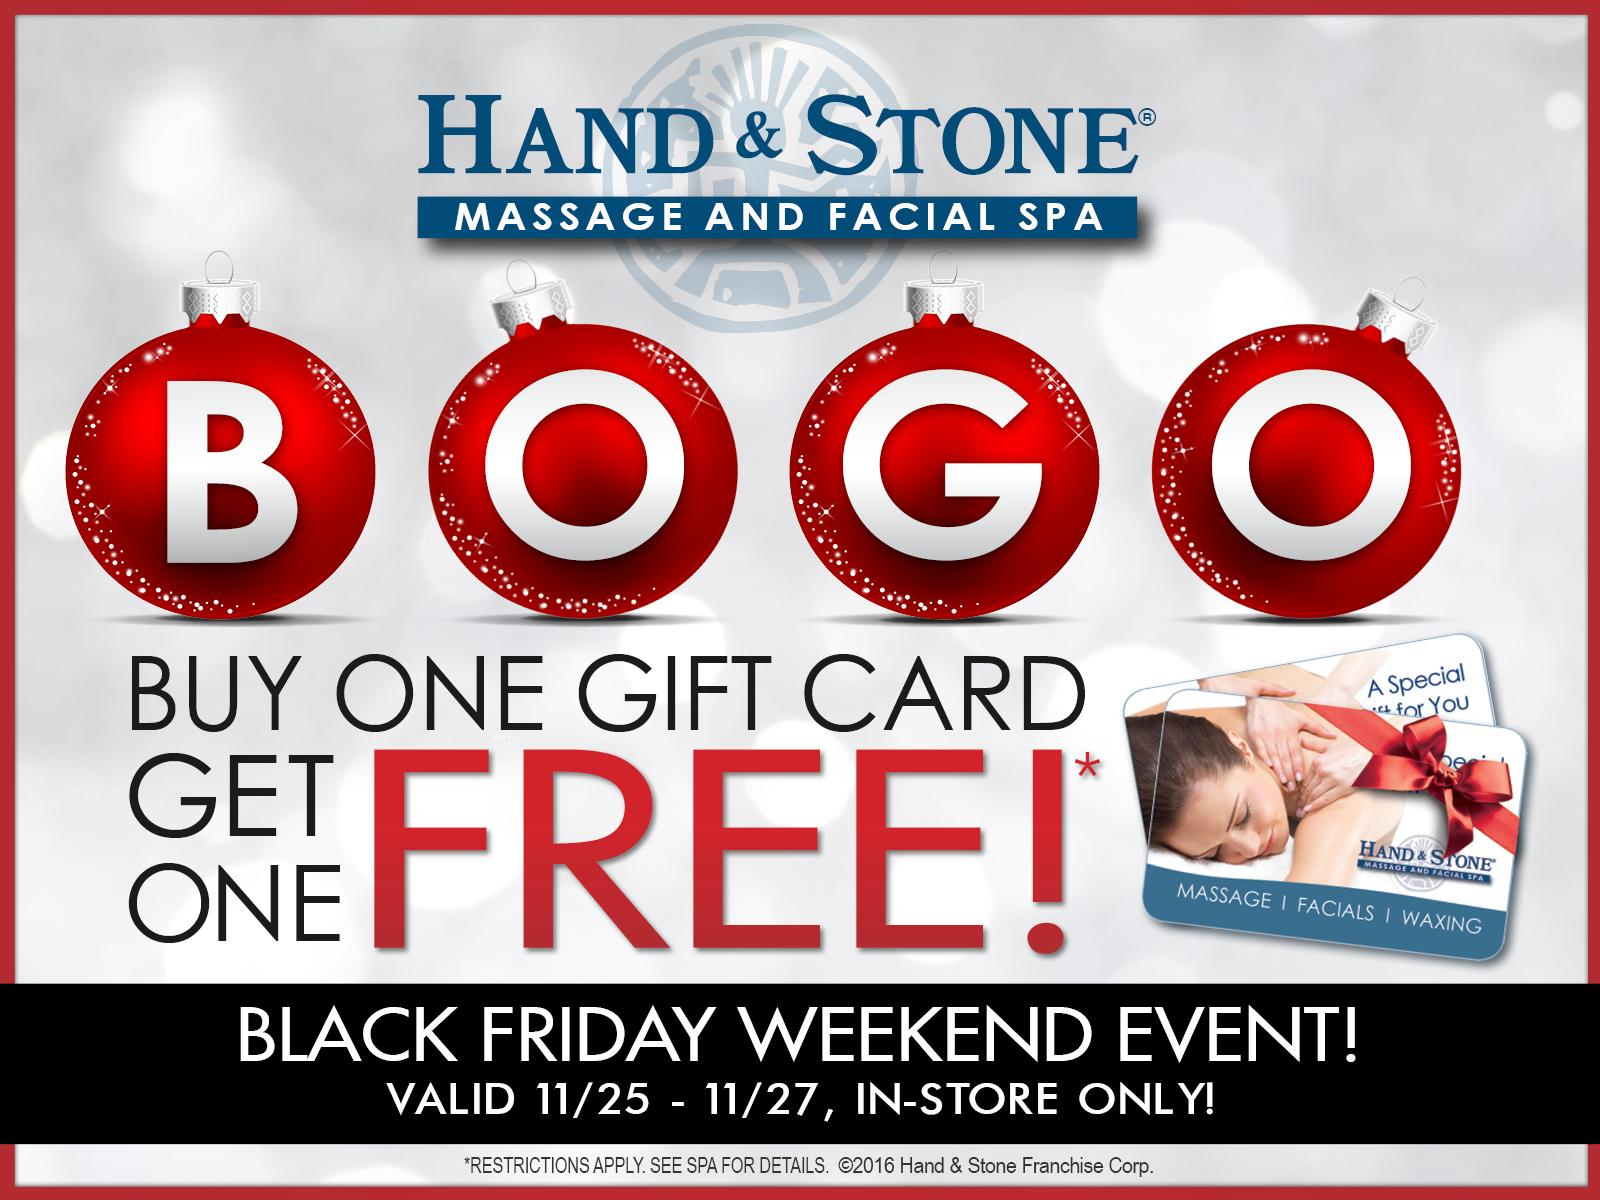 BOGO - our BEST SALE OF THE YEAR is here!!